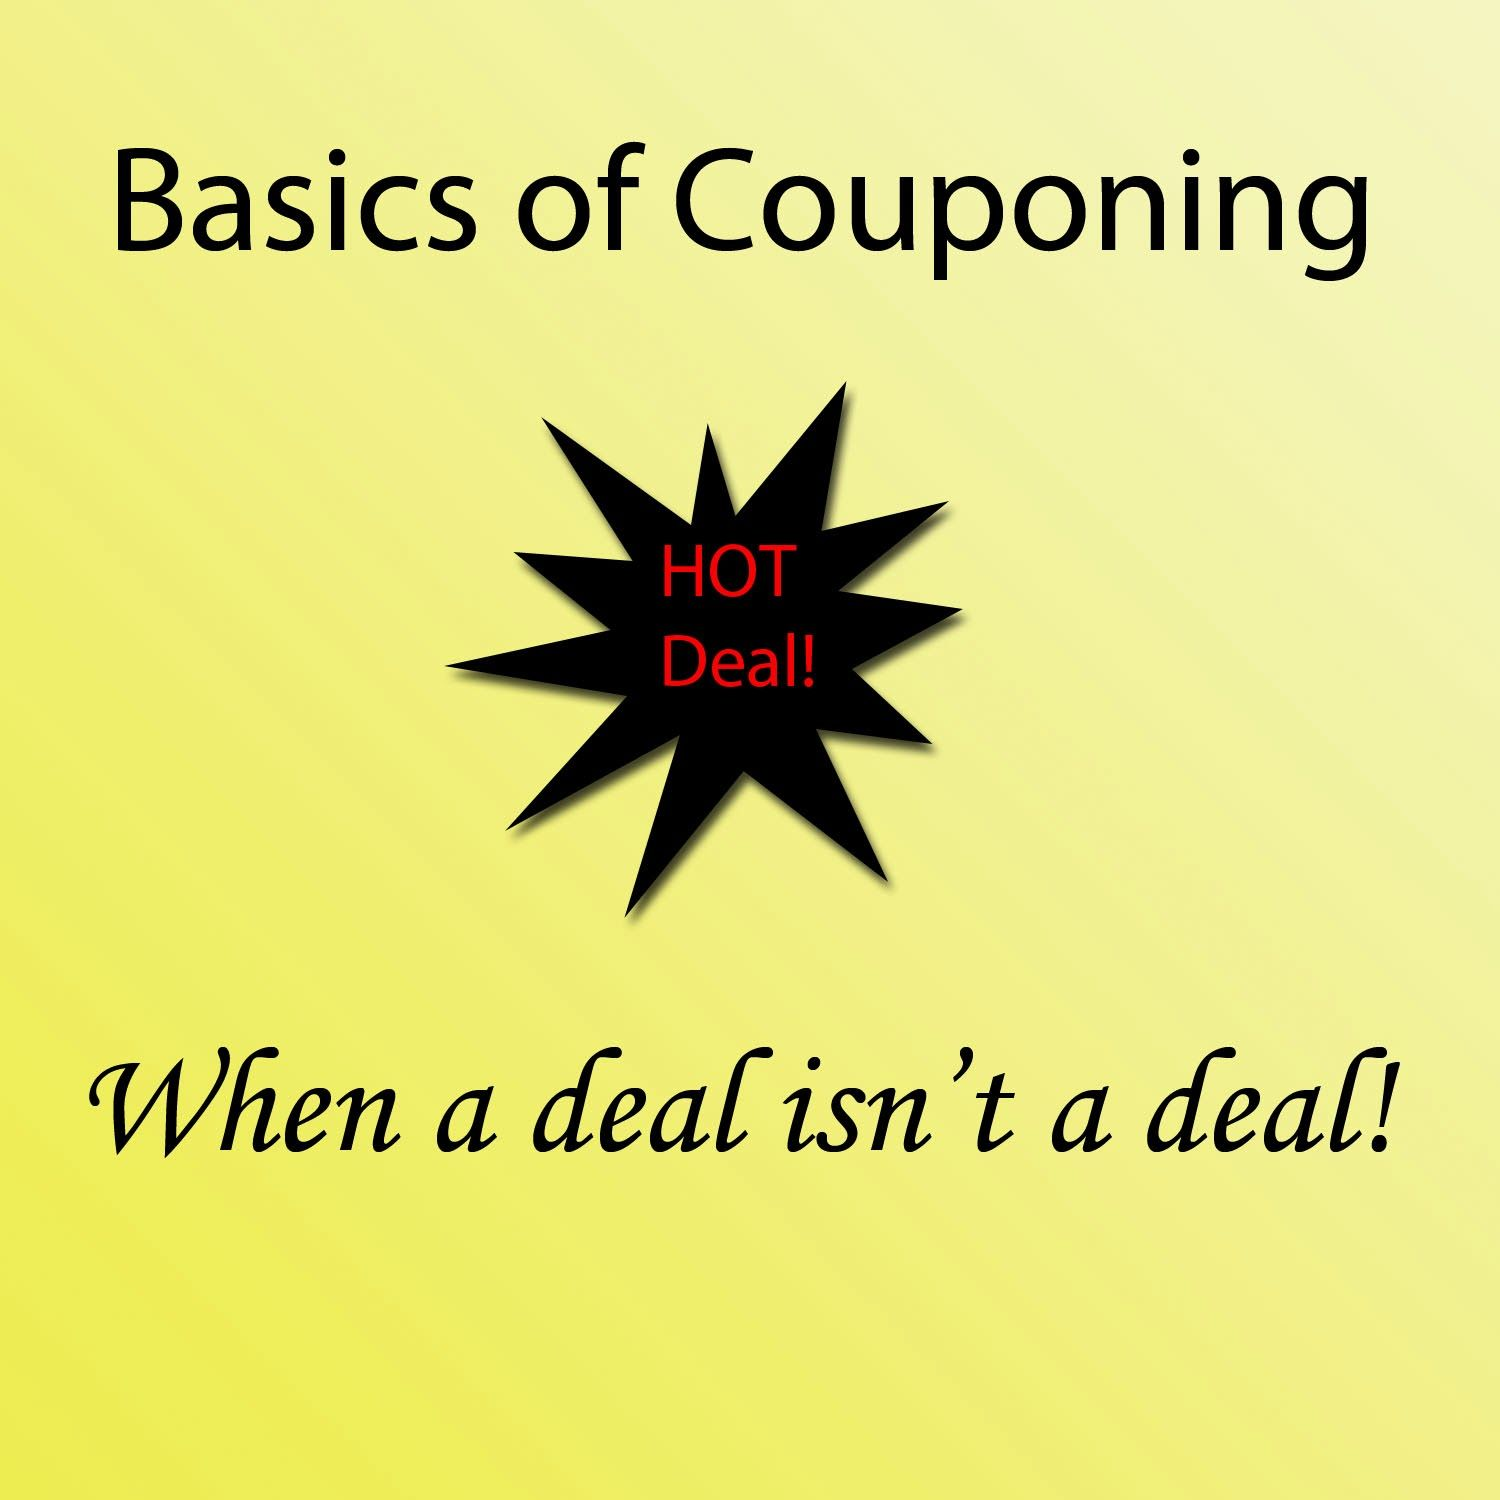 More Than A Coupon Queen : Basics Of Couponing - When Is A Deal Not A Deal?